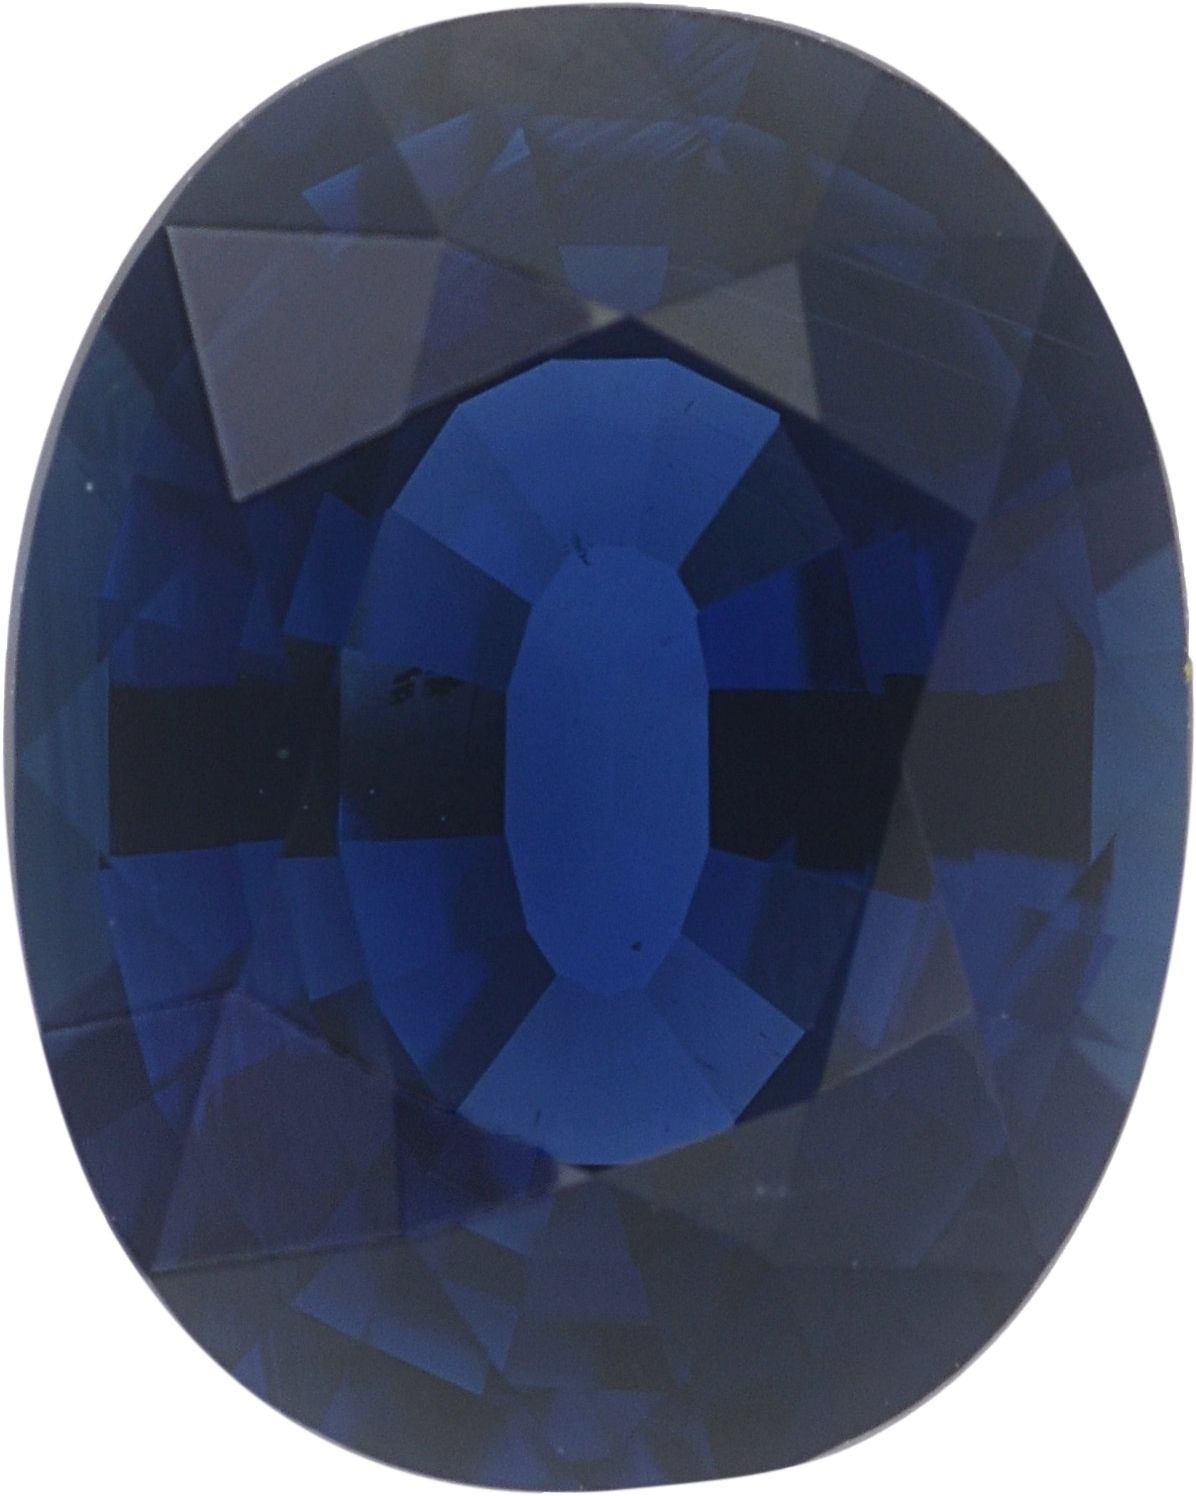 1.56 carats Blue Loose Sapphire Gemstone in Oval Cut, 7.79 x 6.2 mm